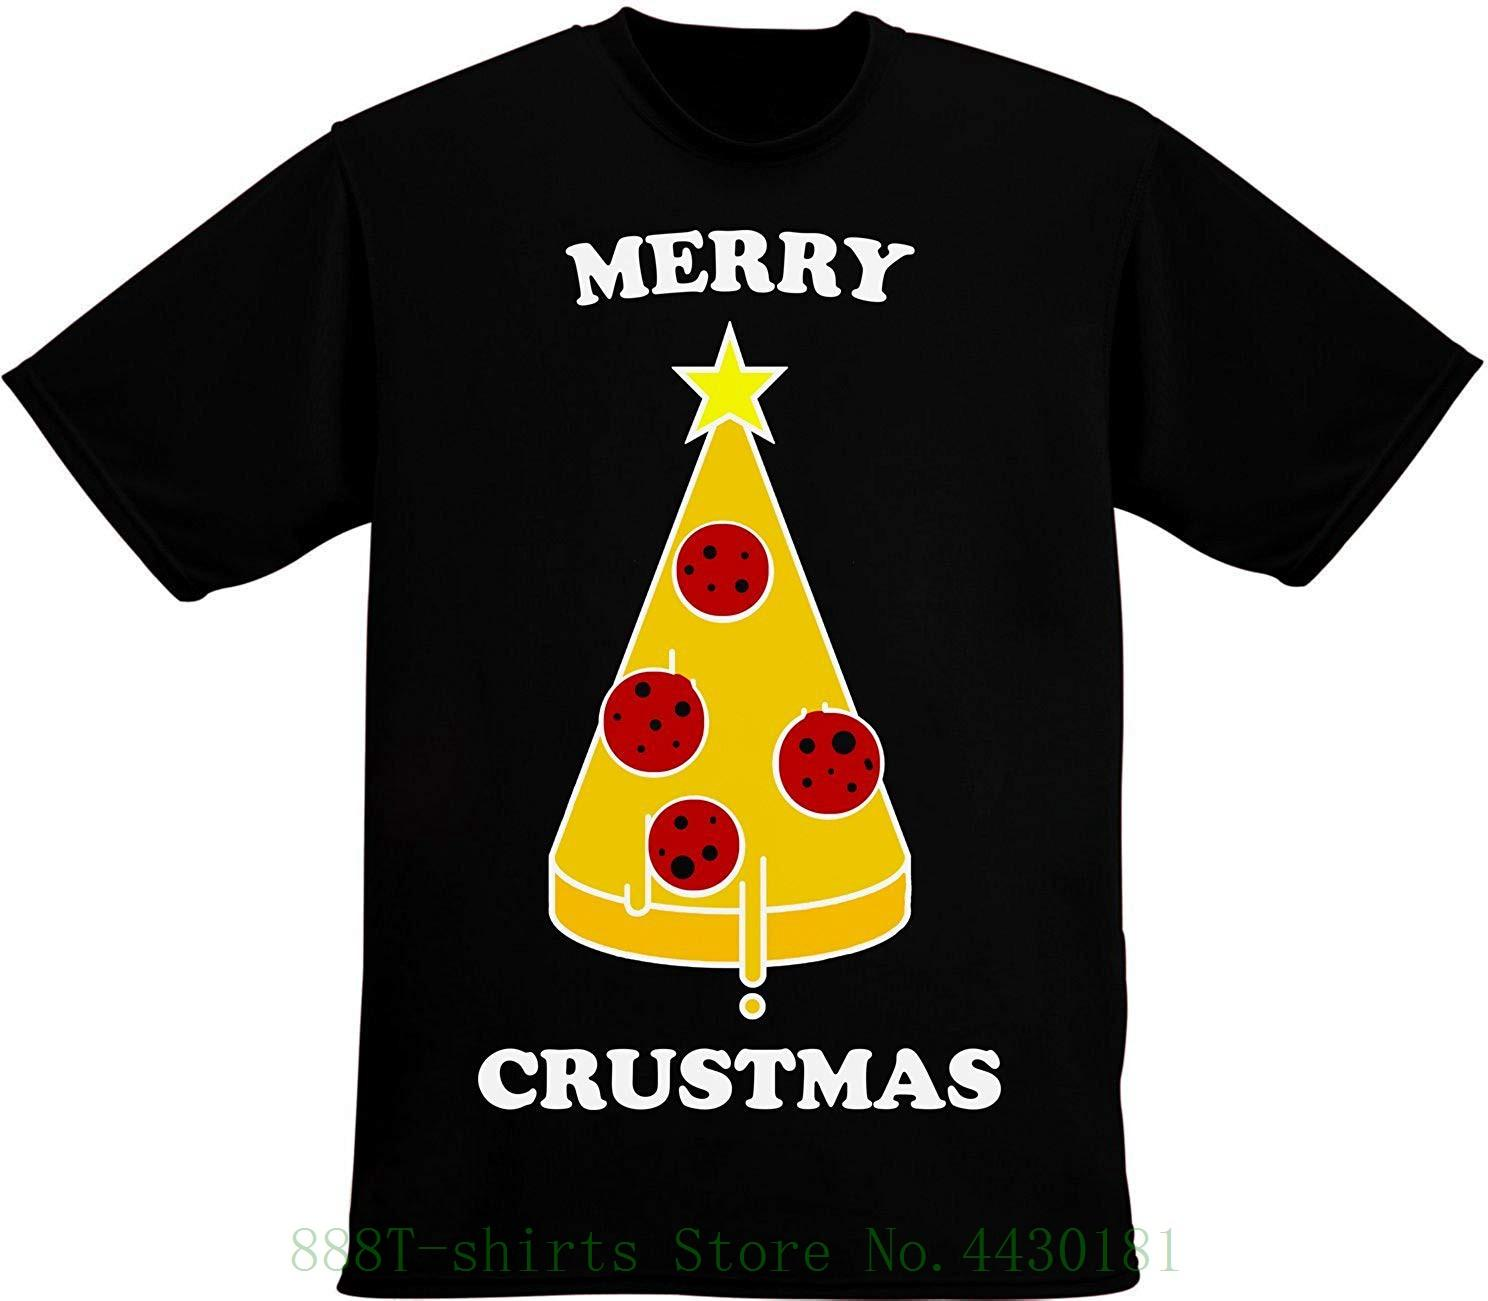 4b50aaa7 Merry Crustmas Funny Christmas Tree Made Of Delicious Pizza Slice Men's T  Shirt Pour Hommes Hipster Tee Shirt Homme